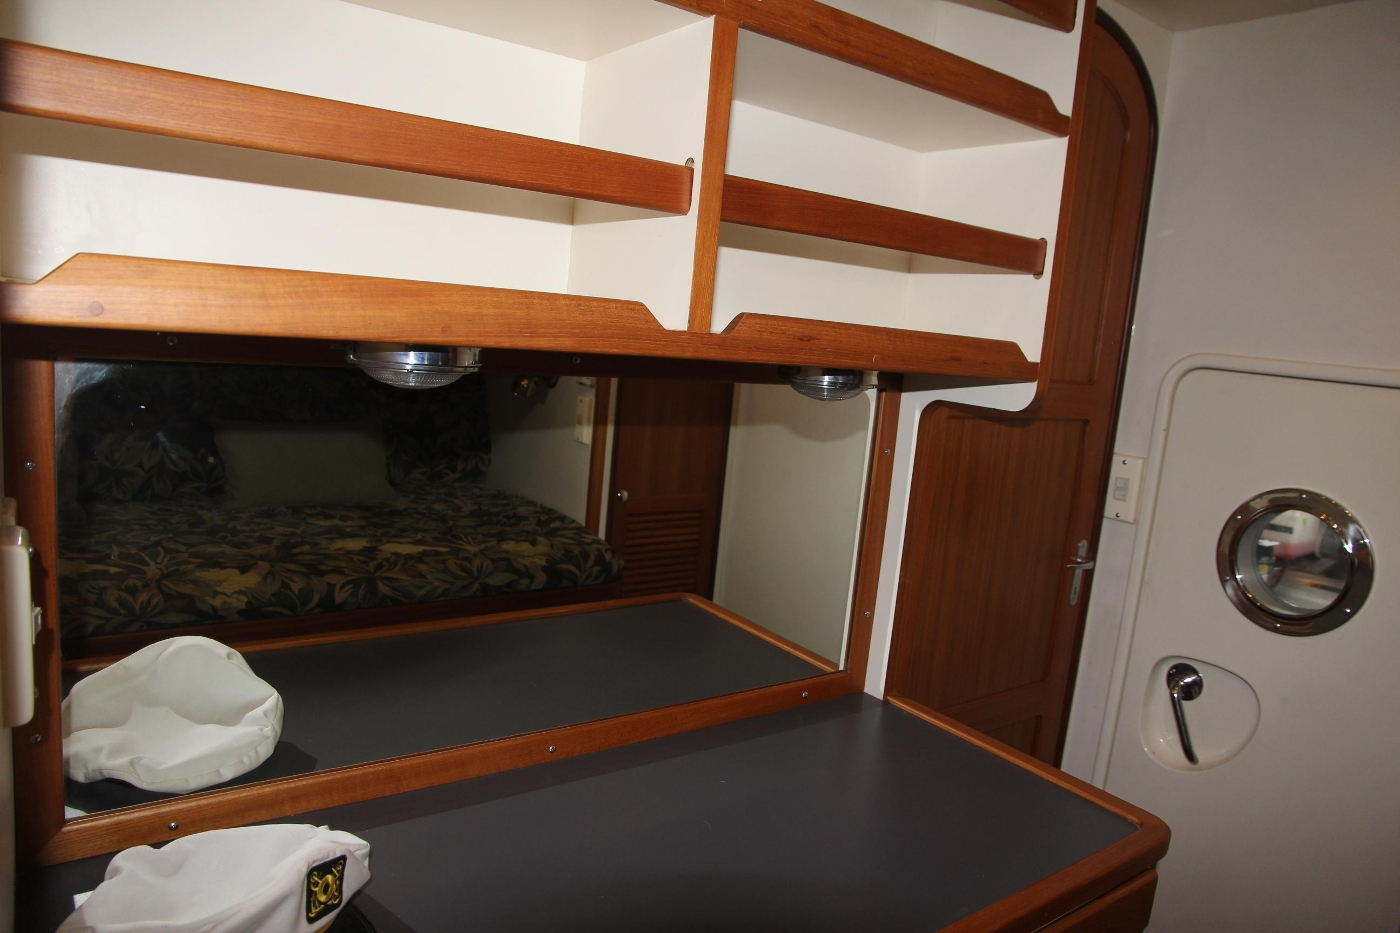 2000 Nordhavn Pilothouse, Book Shelves and Storage